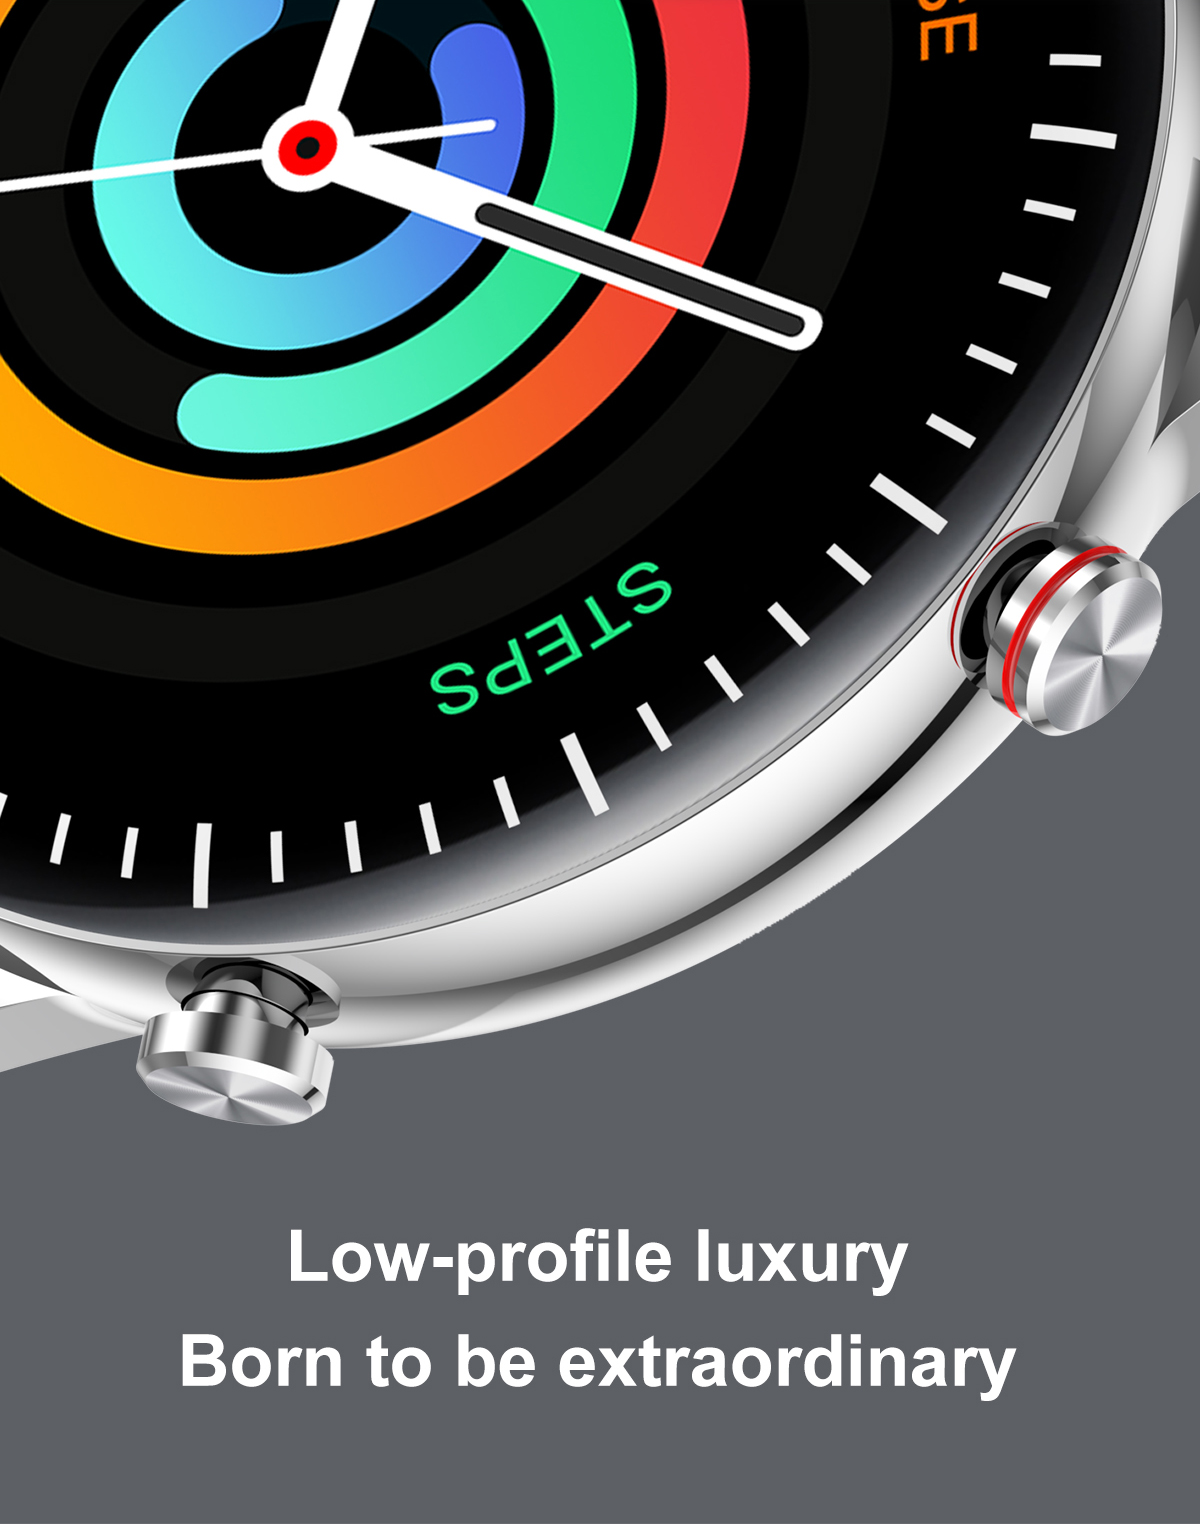 Hb64d2e6b30a146e785a4c7e9af77b1f8E 2021 NEW Smart Watch Women Men Full Touch Fitness Tracker IP67 Waterproof Smartwatch For Android Xiaomi Redmi